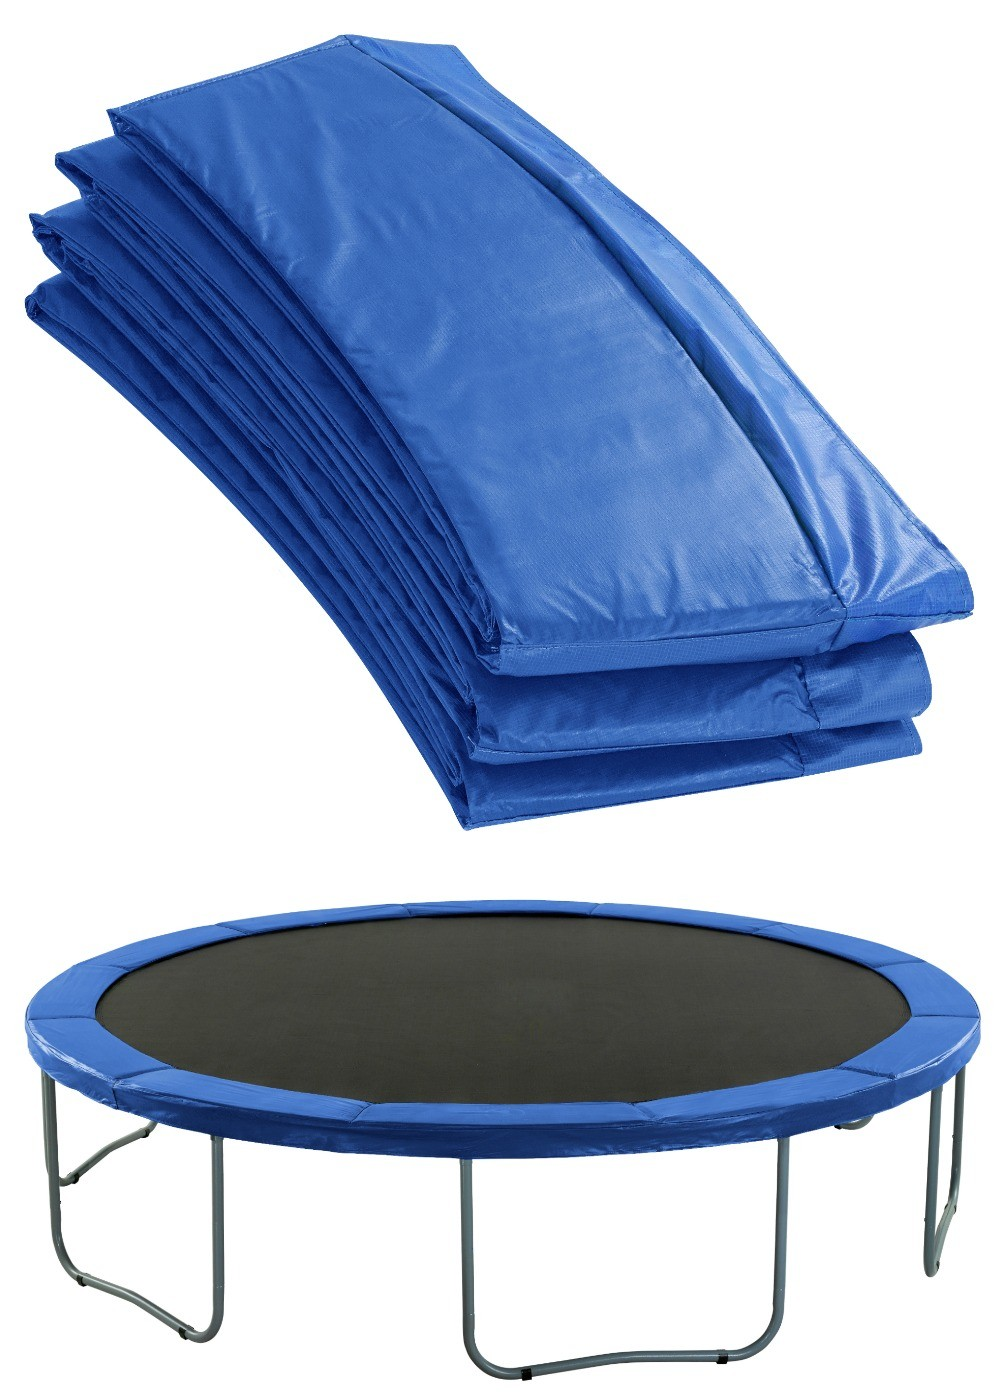 Premium Trampoline Replacement Safety Pad (Spring Cover) | Padding for 366cm 12ft Trampoline | Blue